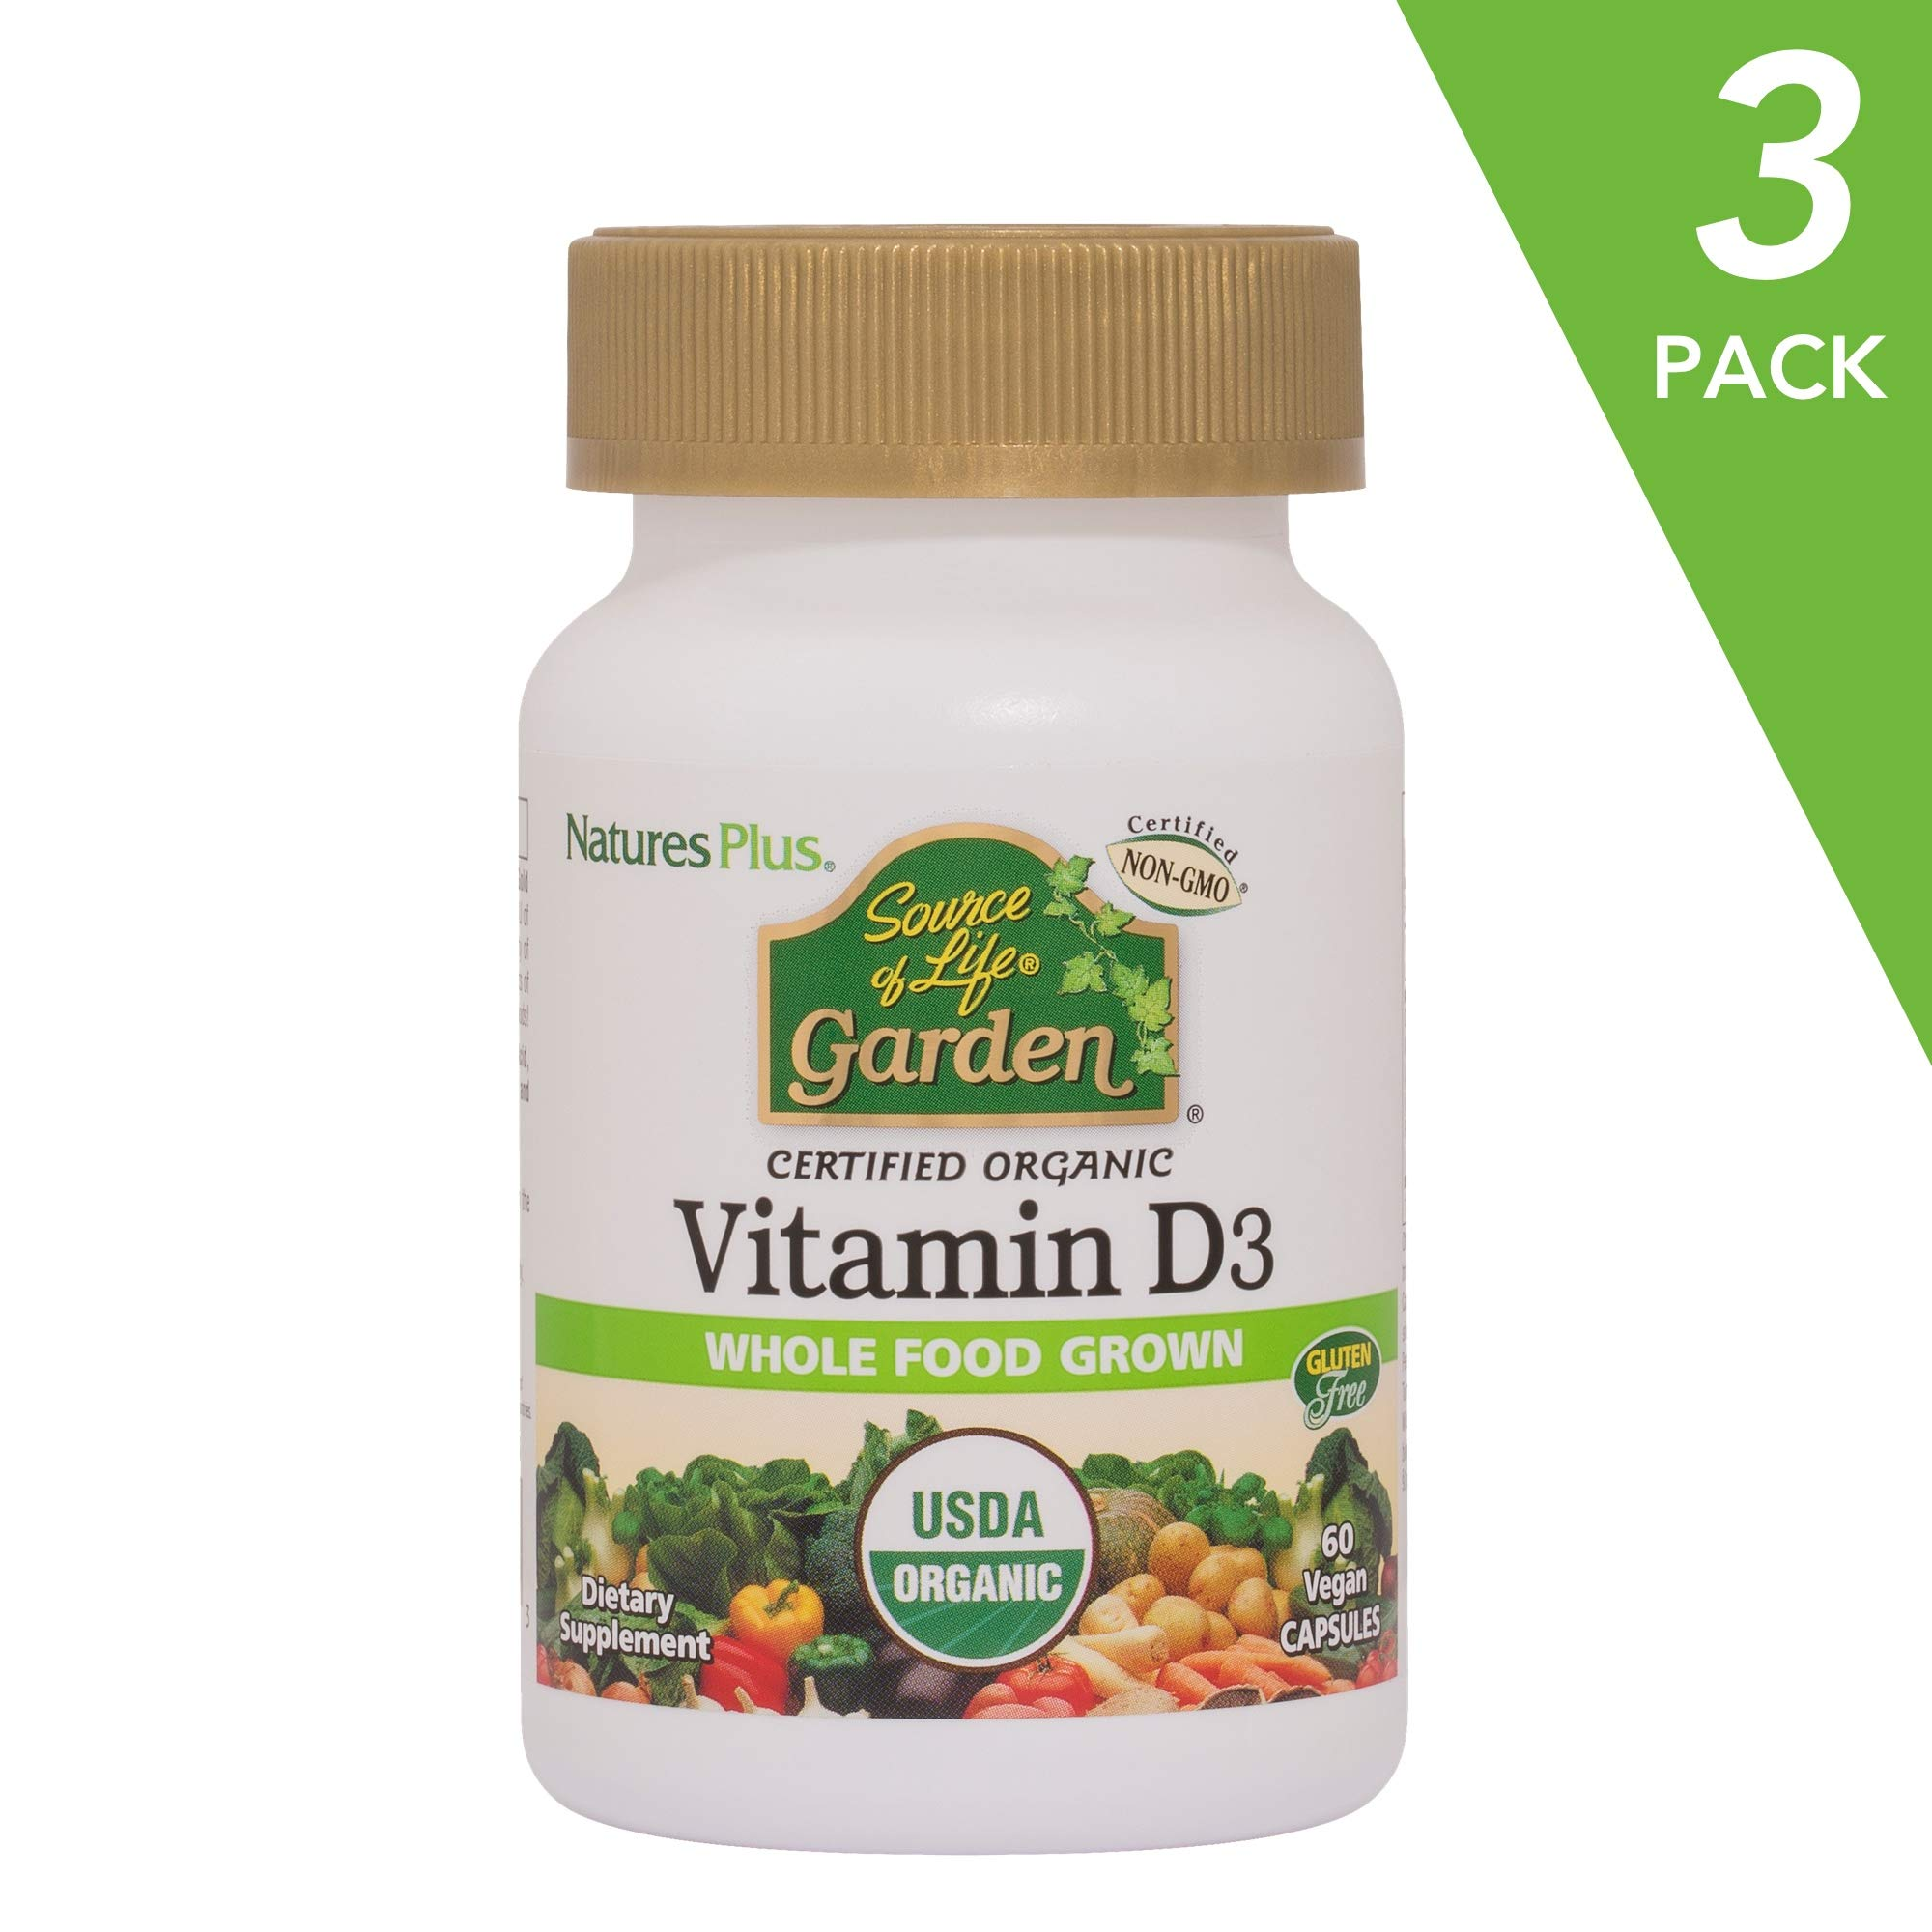 NaturesPlus Source of Life Garden Certified Organic Vitamin D3 (3 Pack) - Cholecalciferol 5000 iu, 60 Vegan Capsules - Whole Food Plant-Based Supplement - Vegetarian, Gluten-Free - 90 Total Servings by Nature's Plus